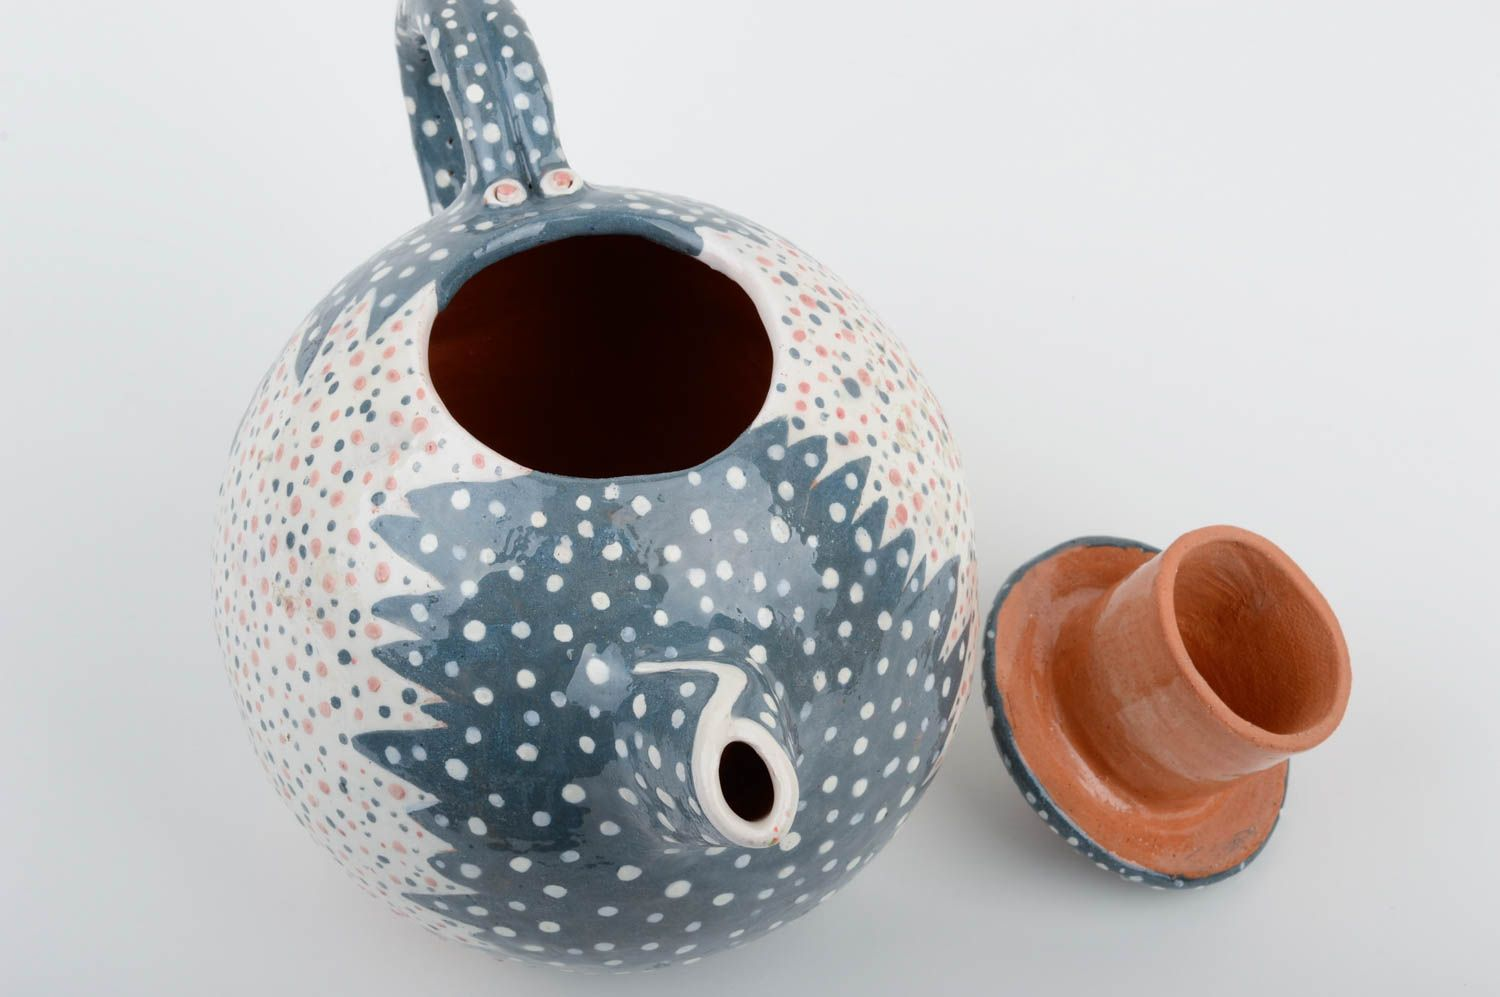 Handmade ceramic ware stylish clay teapot unusual kitchenware art pottery photo 4